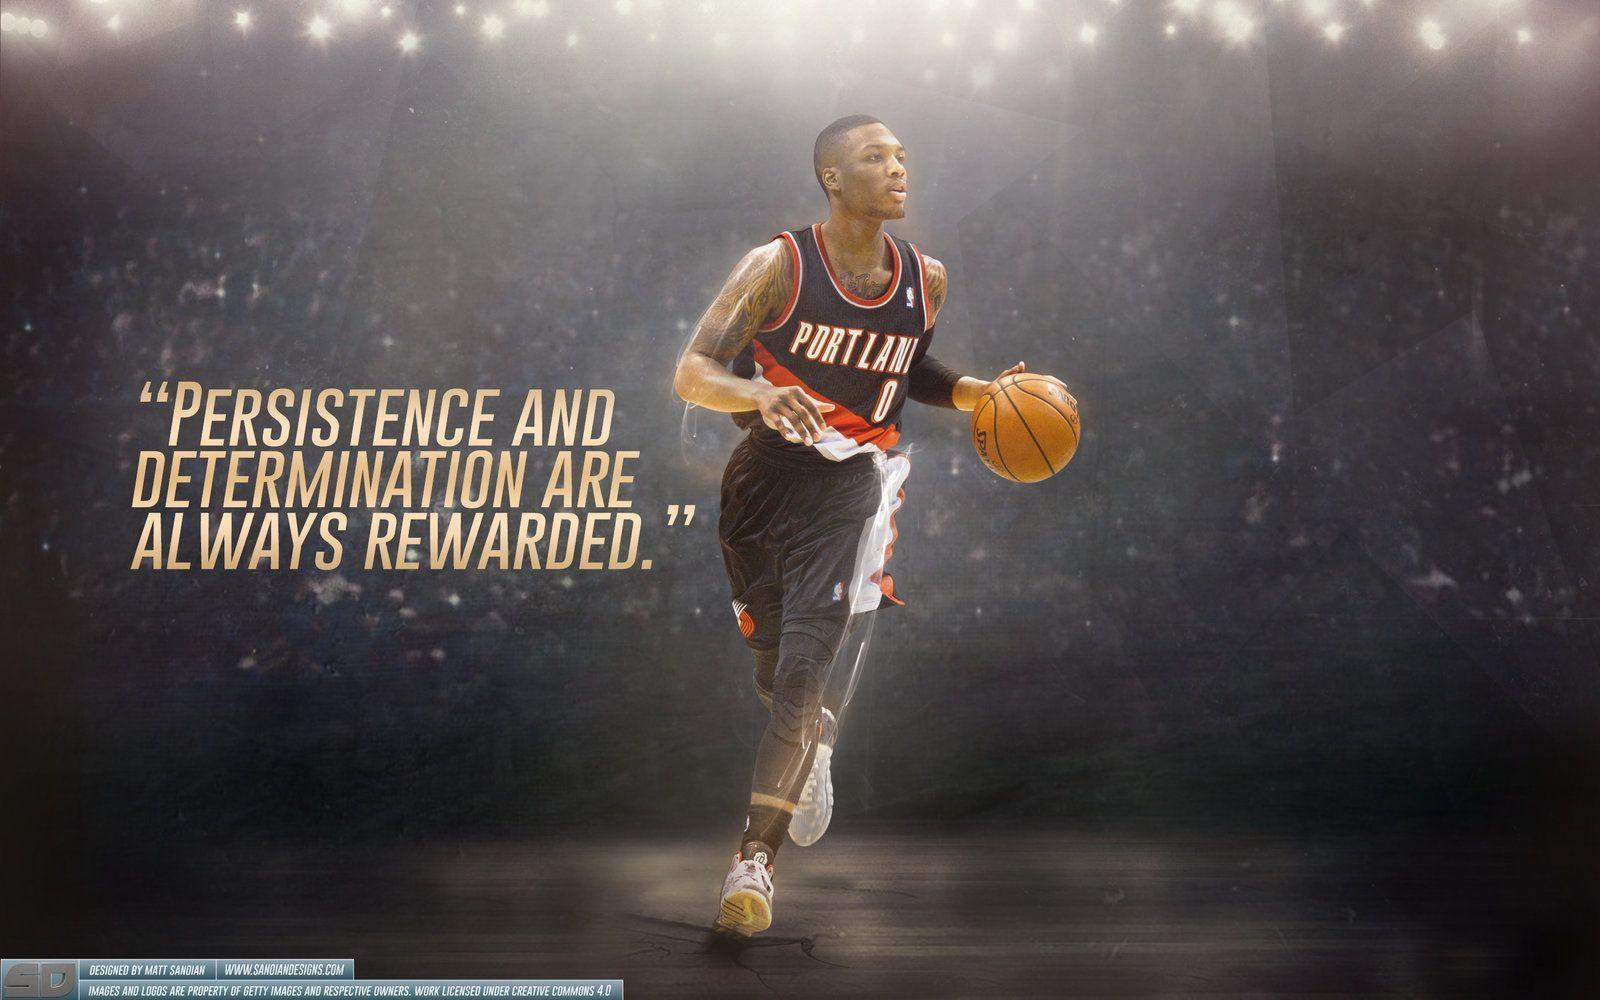 Damian Lillard Wallpaper iPhone - WallpaperSafari